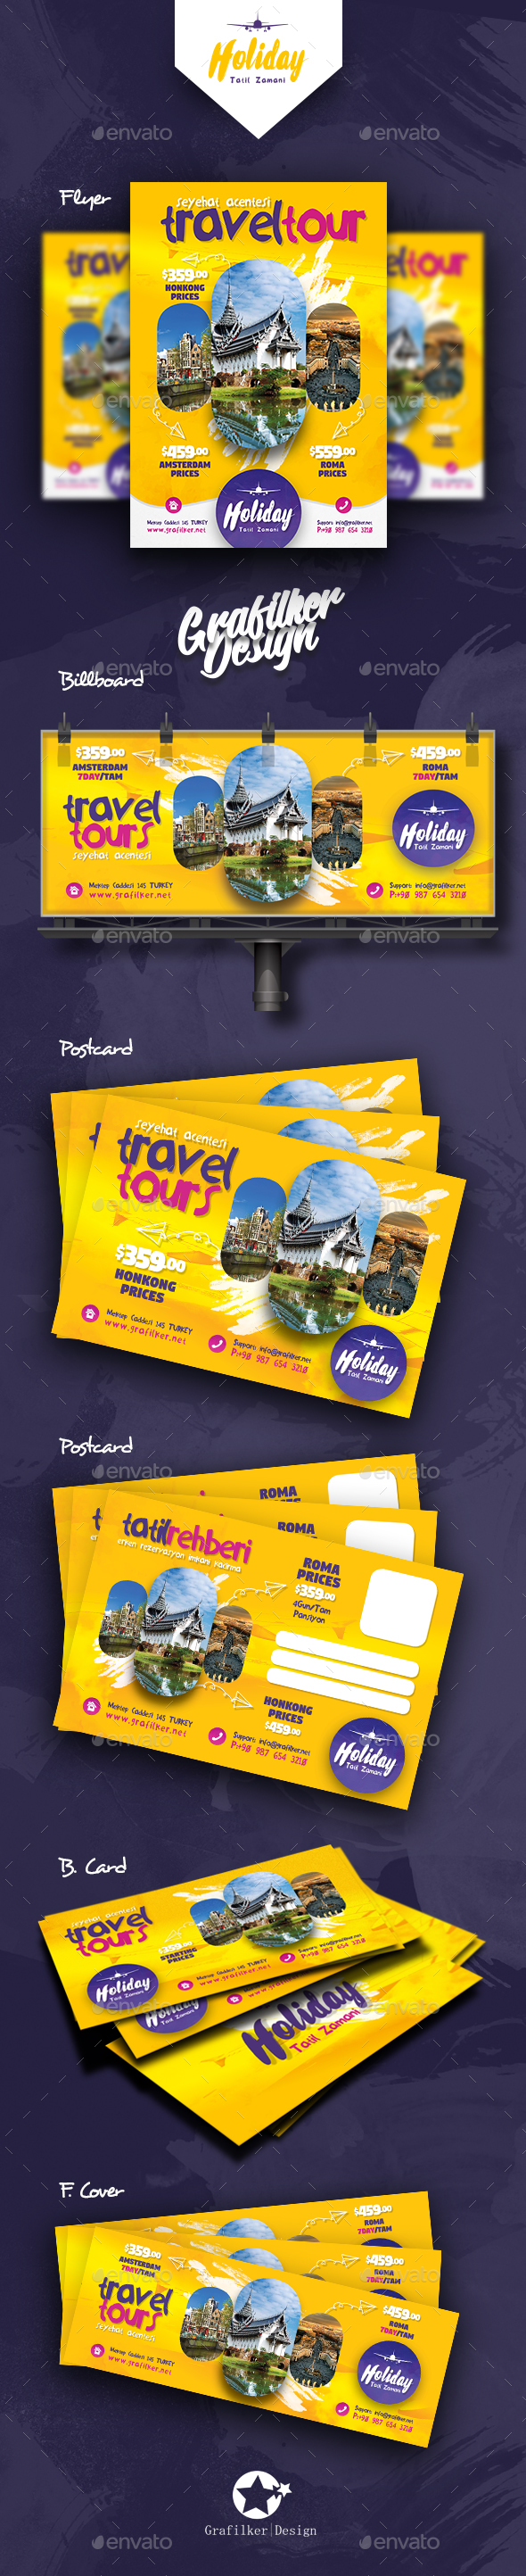 Travel Tours Bundle Templates - Corporate Flyers